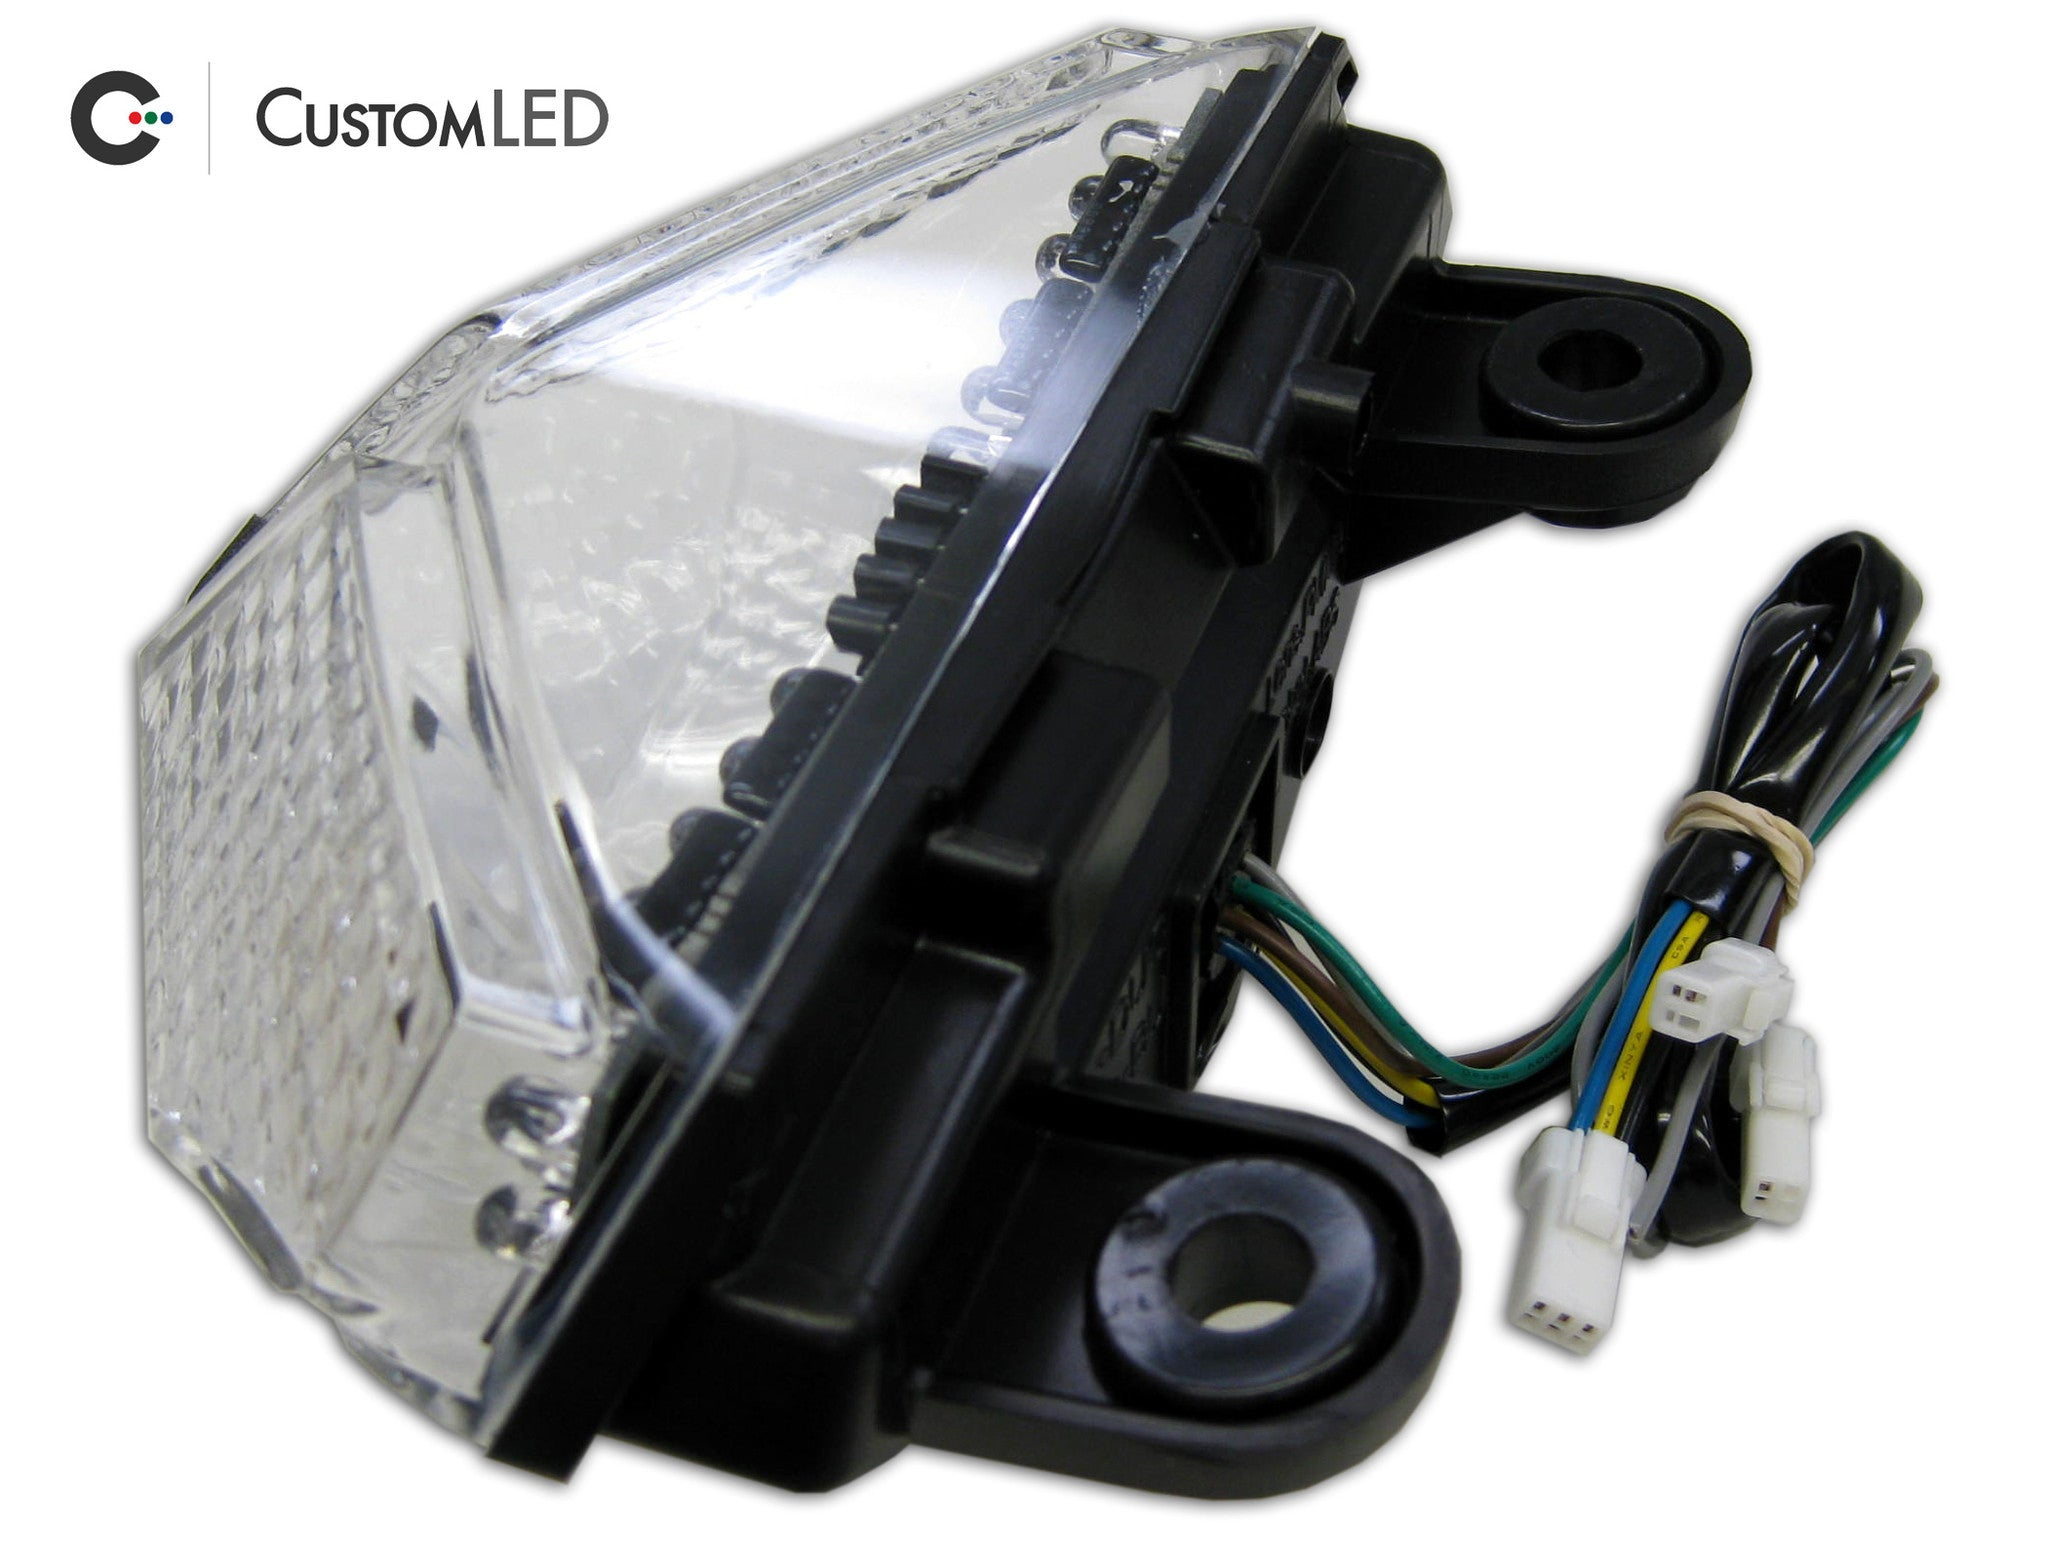 2008 2013 Ducati 848 Blaster X Integrated Led Tail Light Custom Wiring Diagram Bmw S1000rr Multistrada 1200 For Years 2009 2010 2011 2012